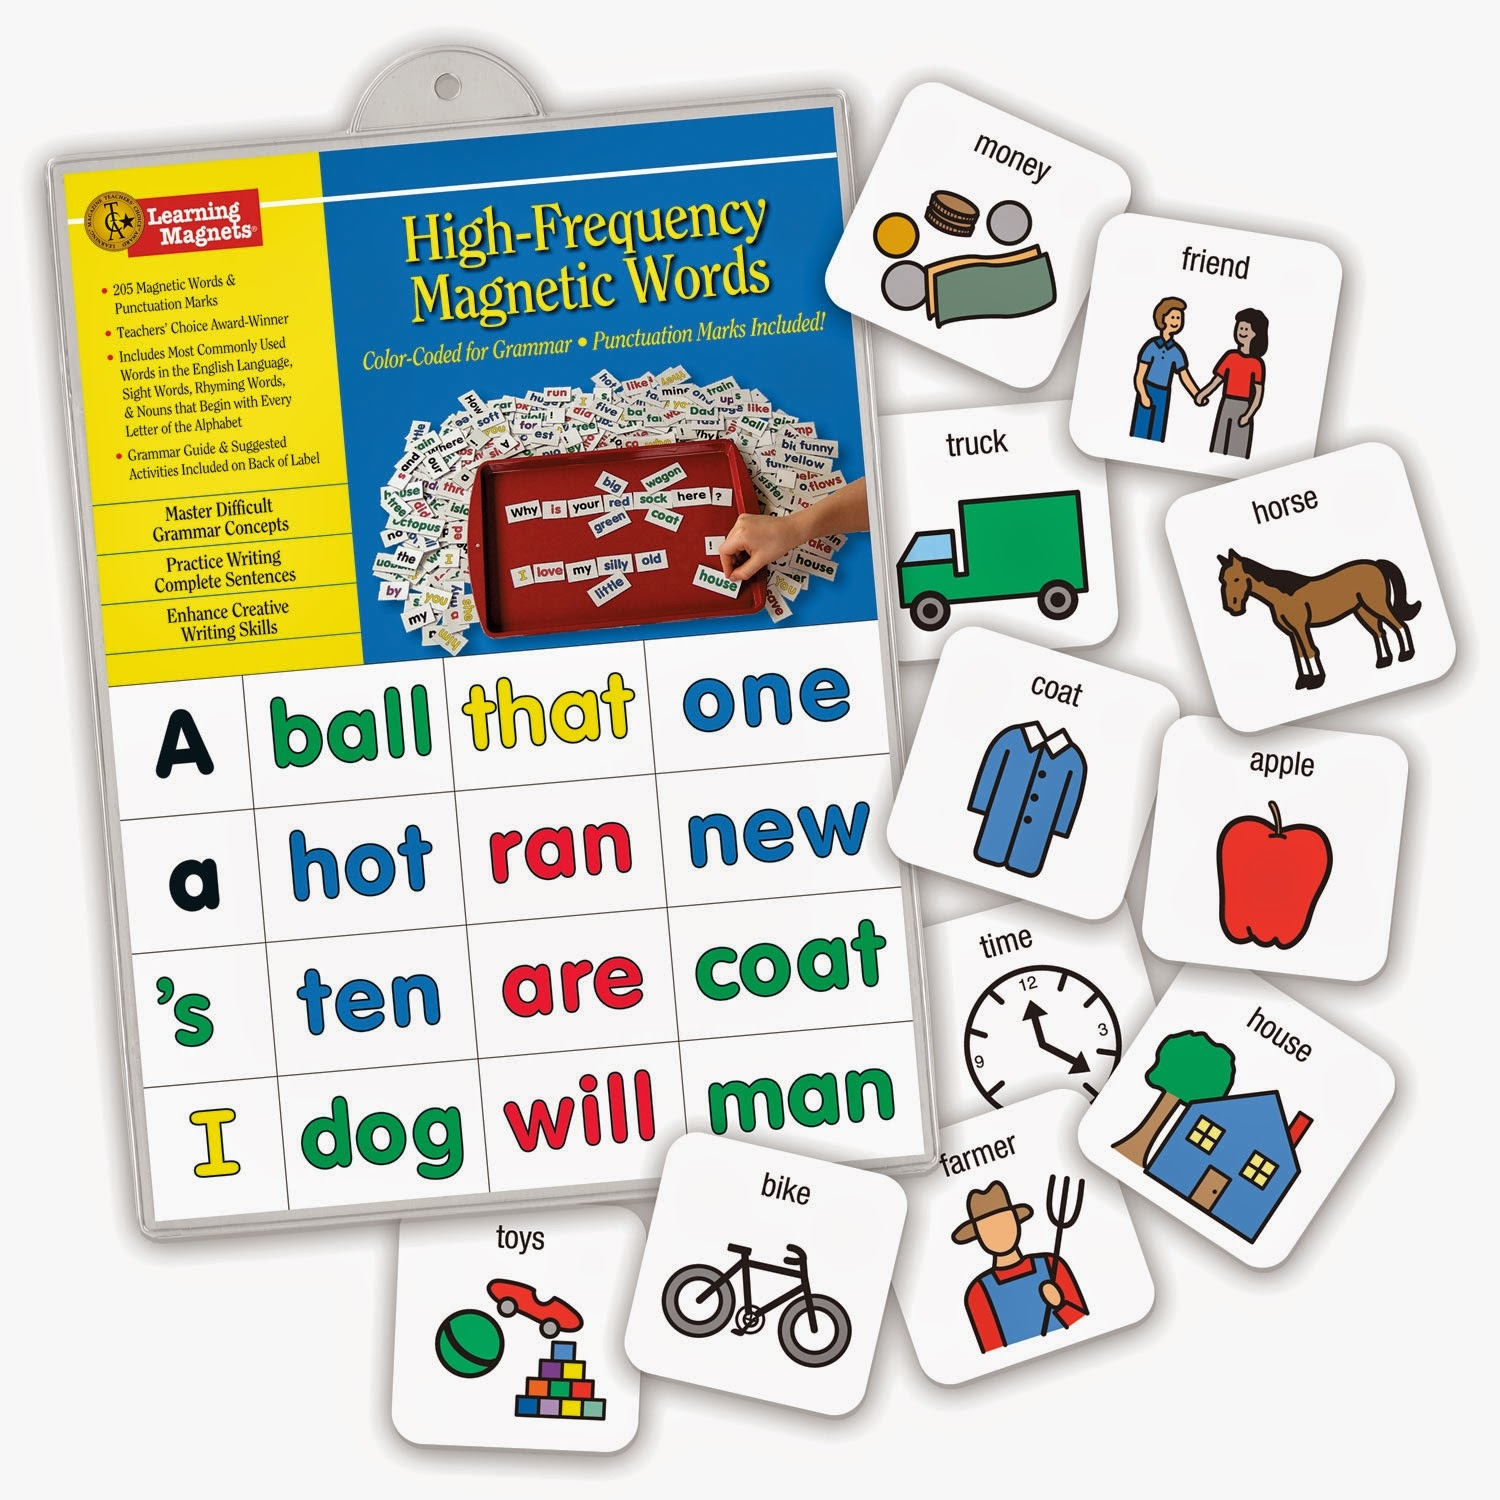 High frequency magnetic words